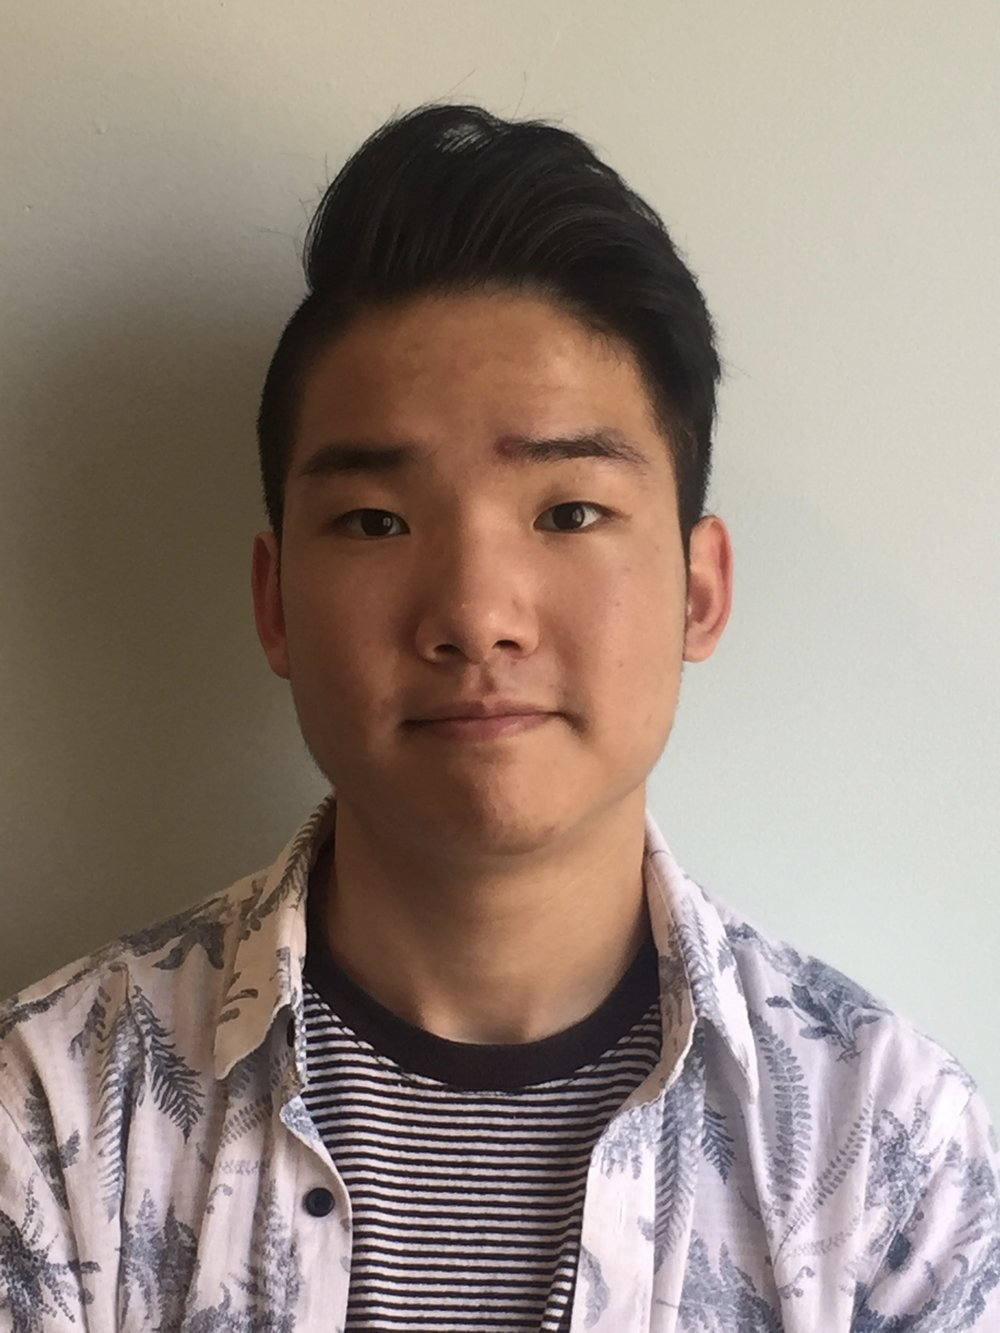 James  - High school student charles wright acad.  - igem member 2018